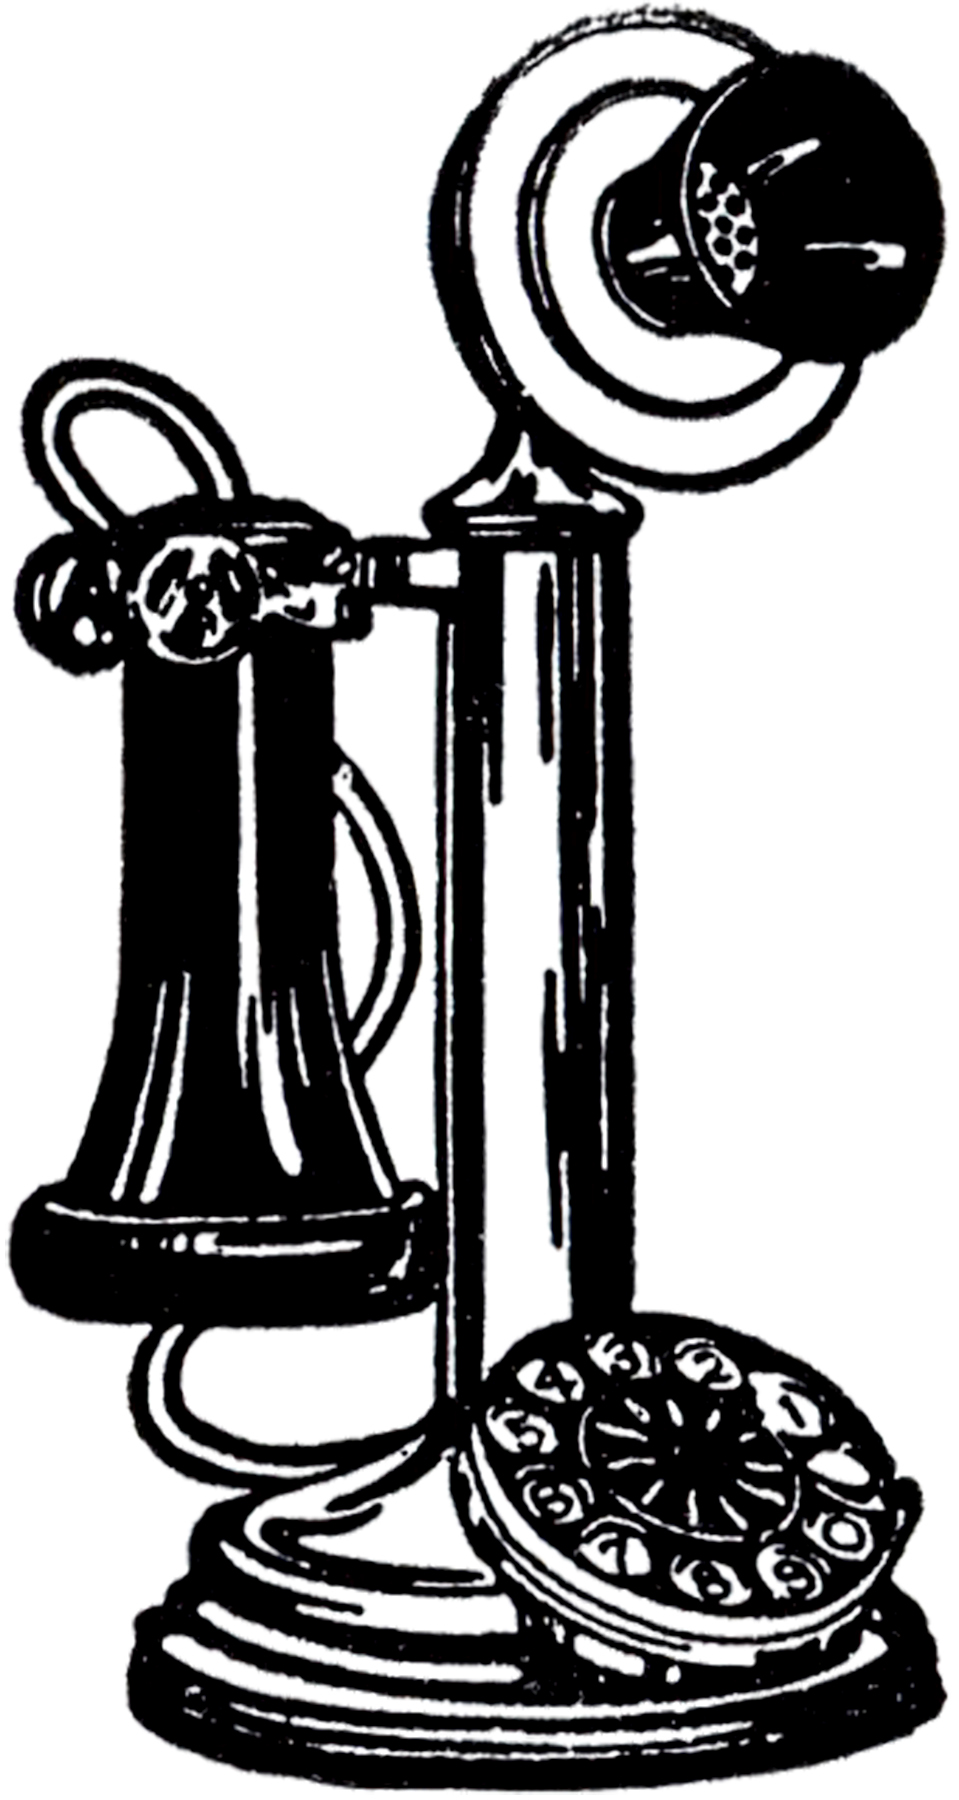 Old fashioned phone clipart jpg royalty free library 7 Vintage Telephone Images! - The Graphics Fairy jpg royalty free library